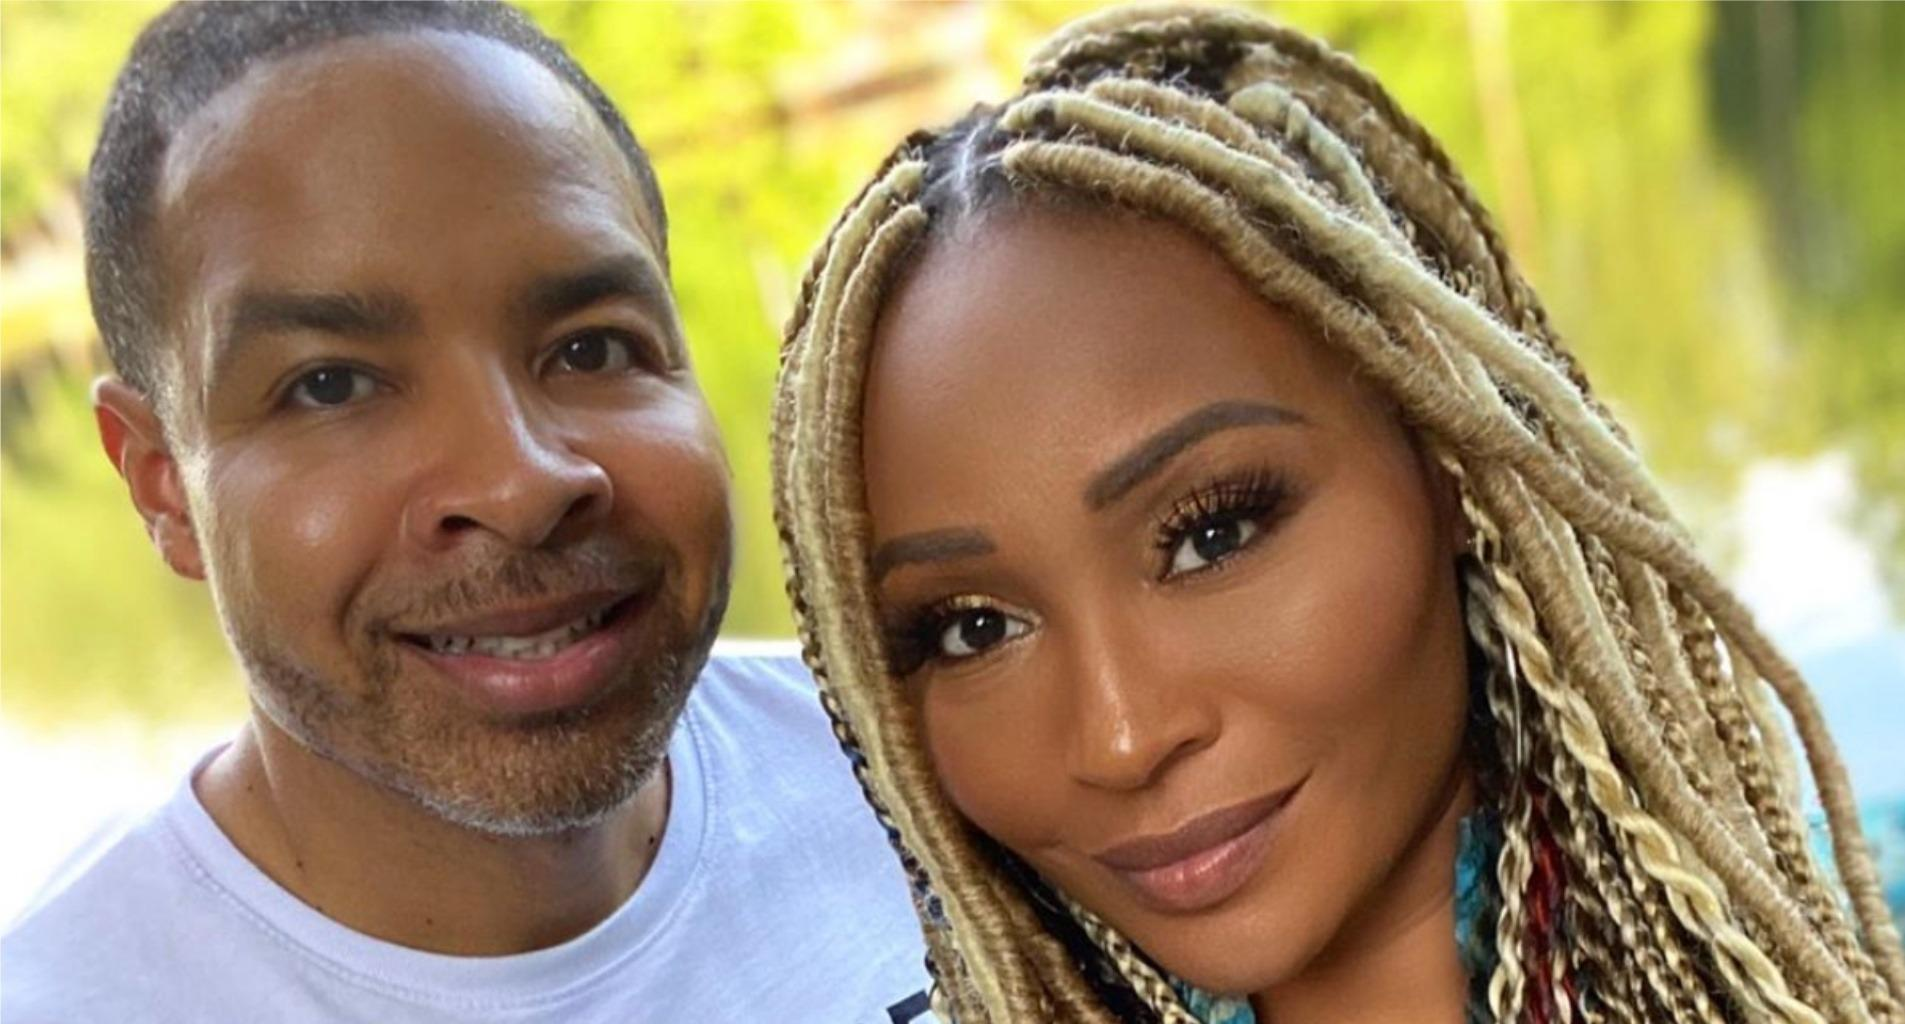 Cynthia Bailey Drops Useful Advice For Fans - Check It Out Here